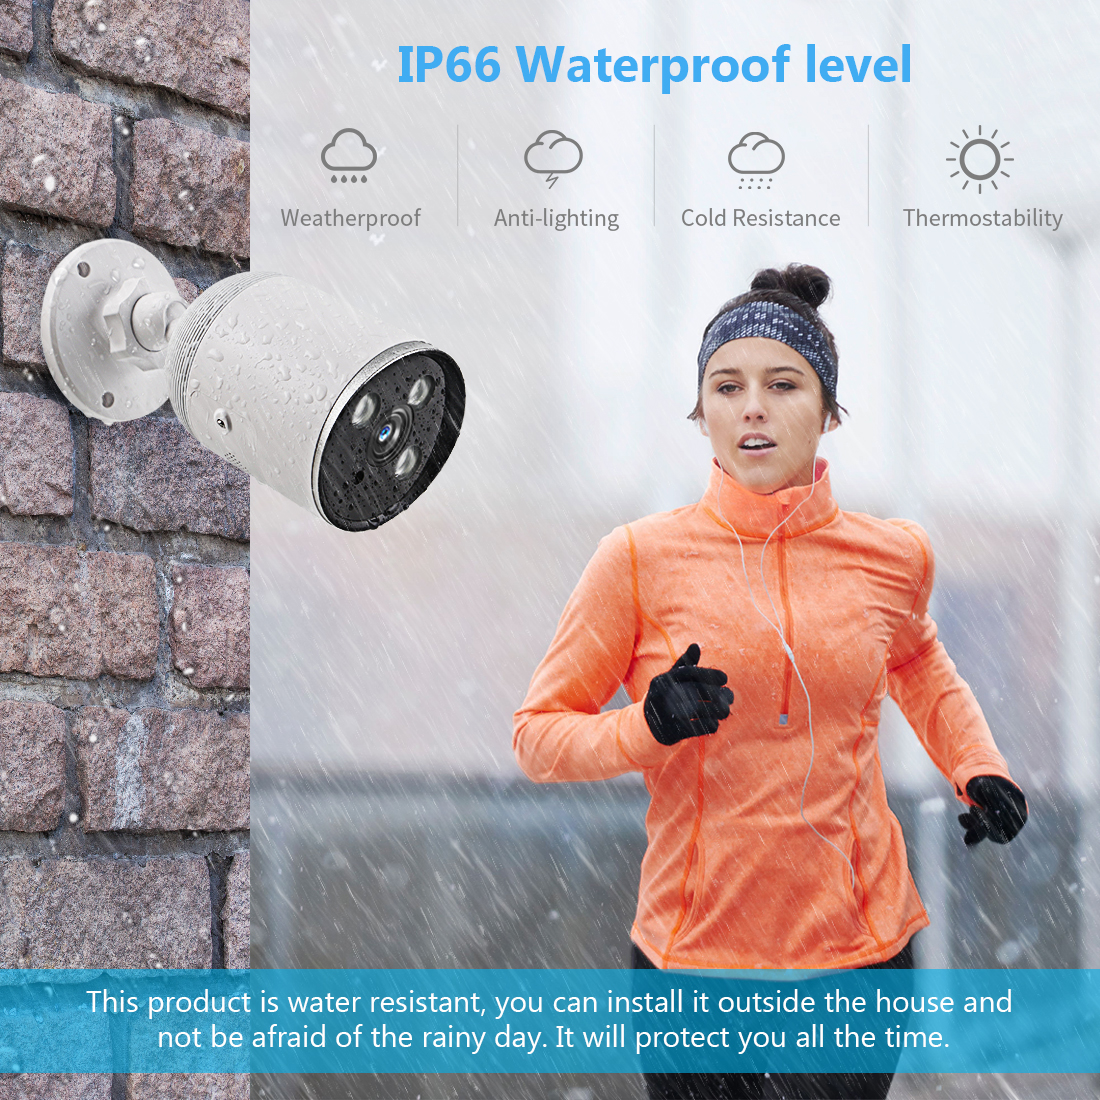 1080P IP66 Waterproof Outdoor Bullet Camera - YCC365 7